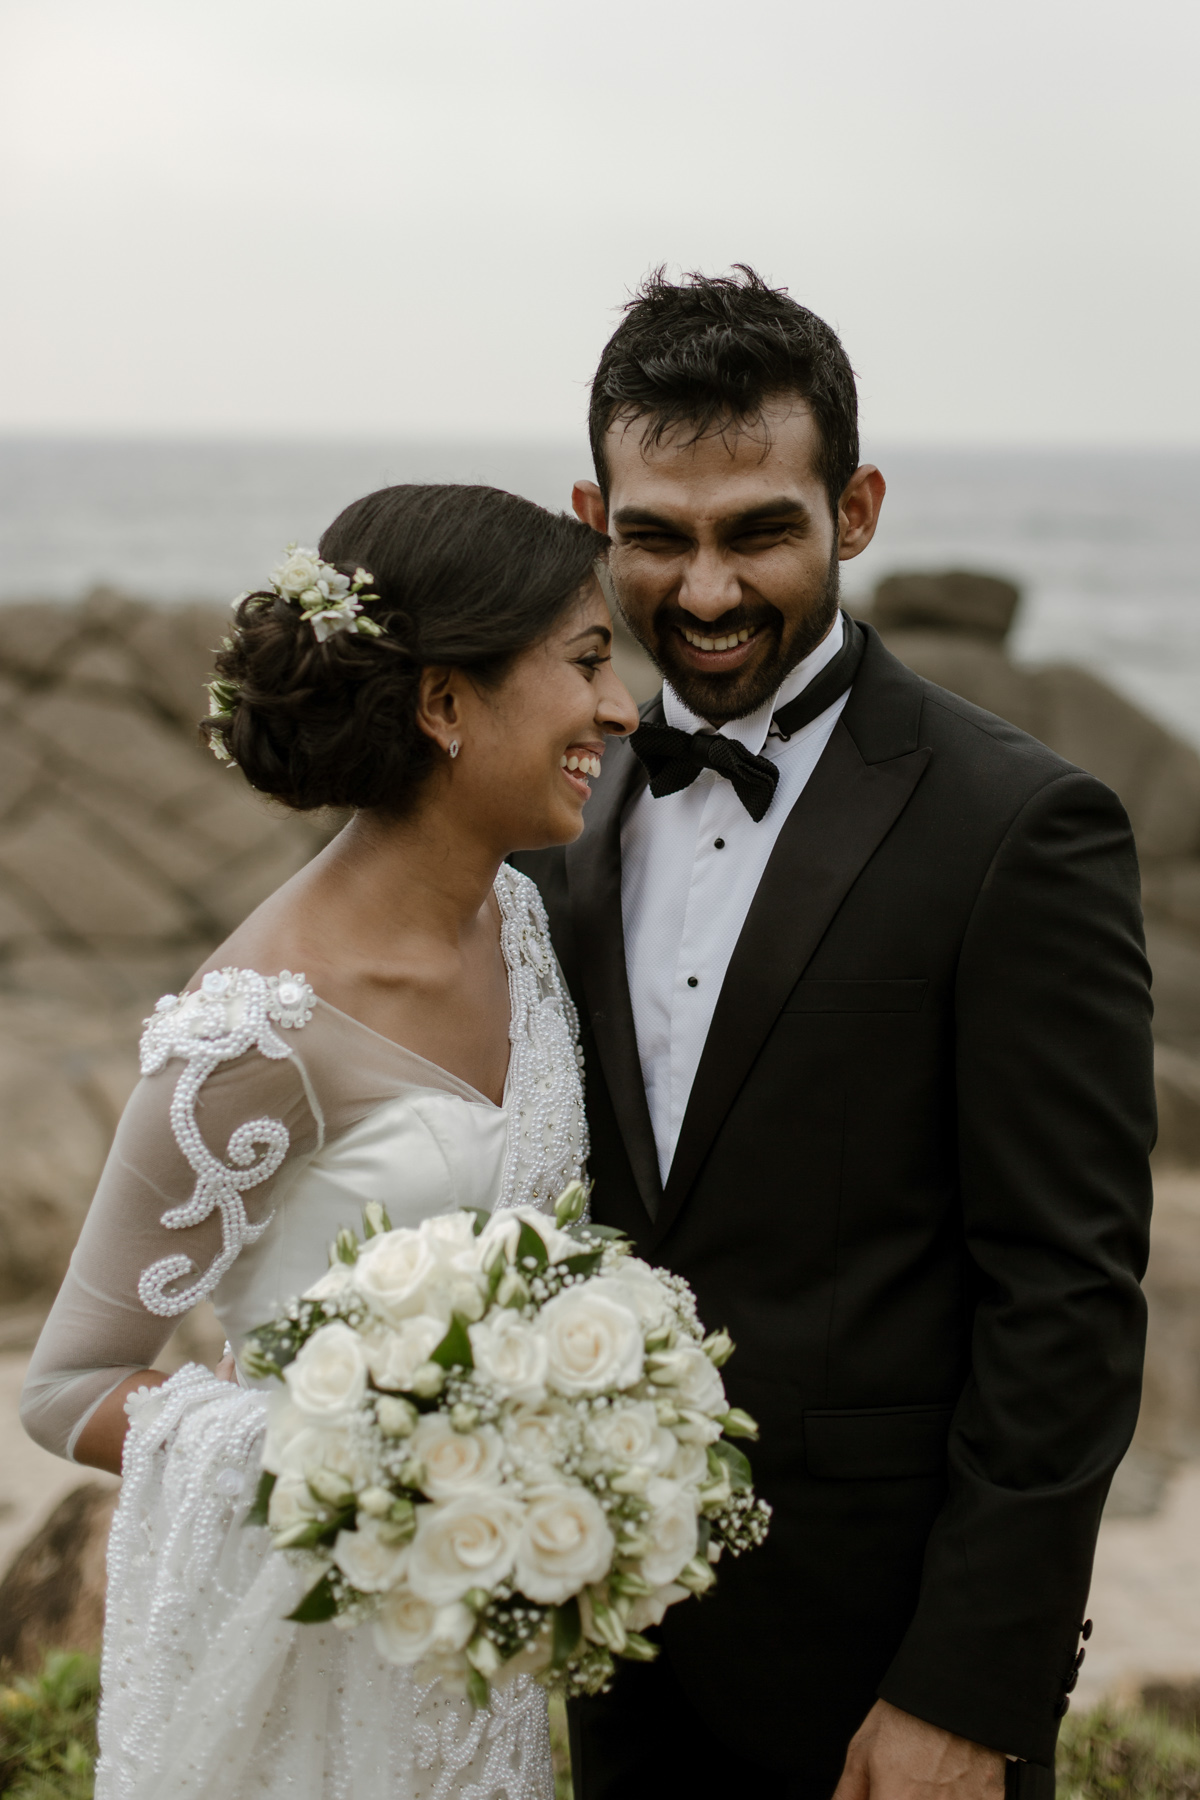 Marrying Wedding Customs in Sri Lanka, by Paola Colleoni